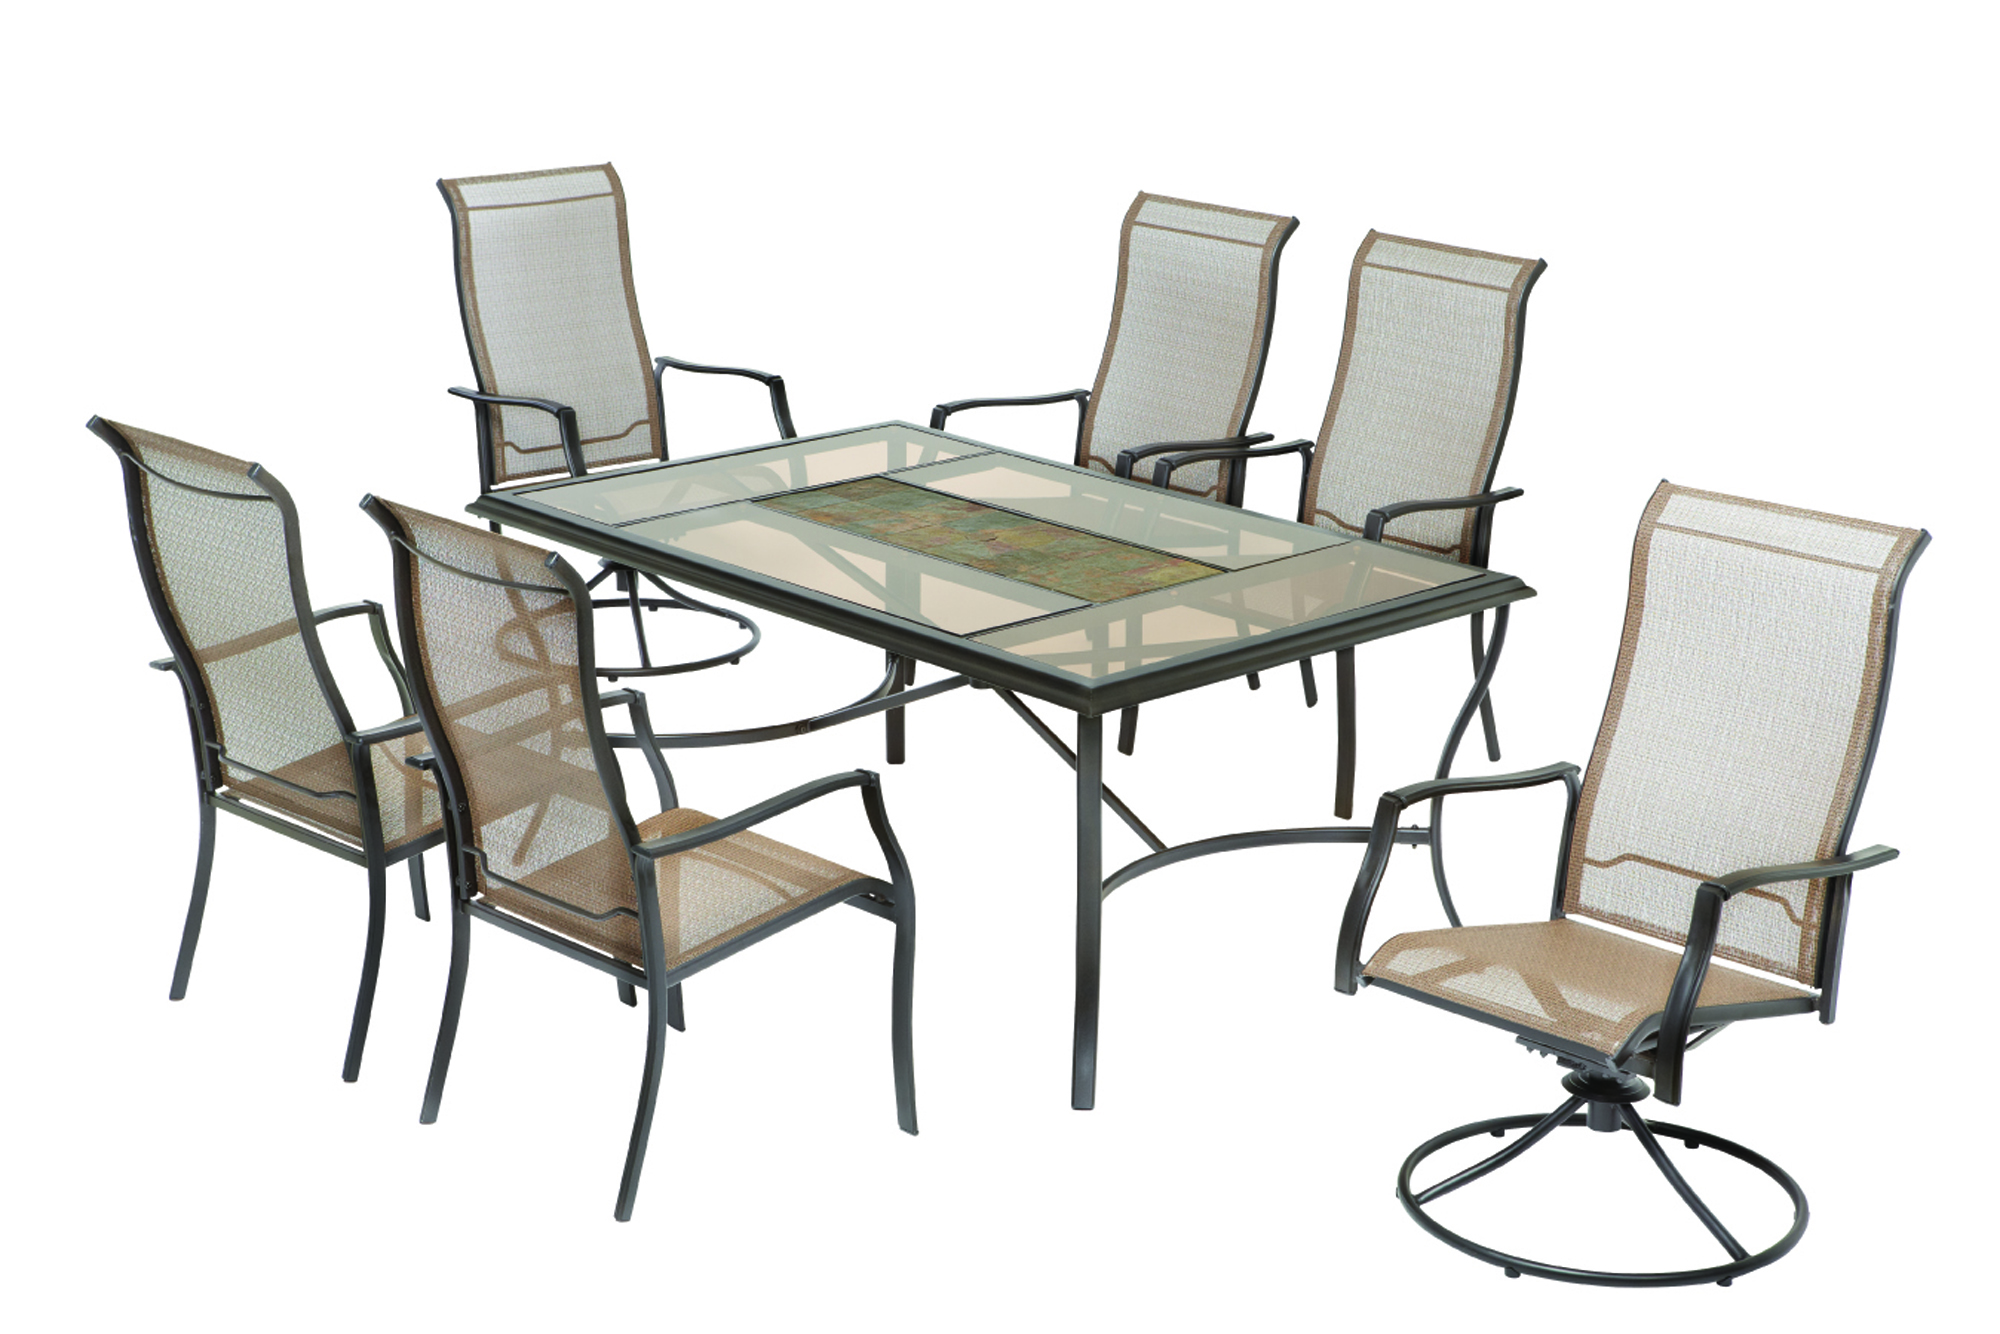 hampton bay patio chairs chair exercises for seniors handout sold at home depot recalled because porch life shouldn anselmo